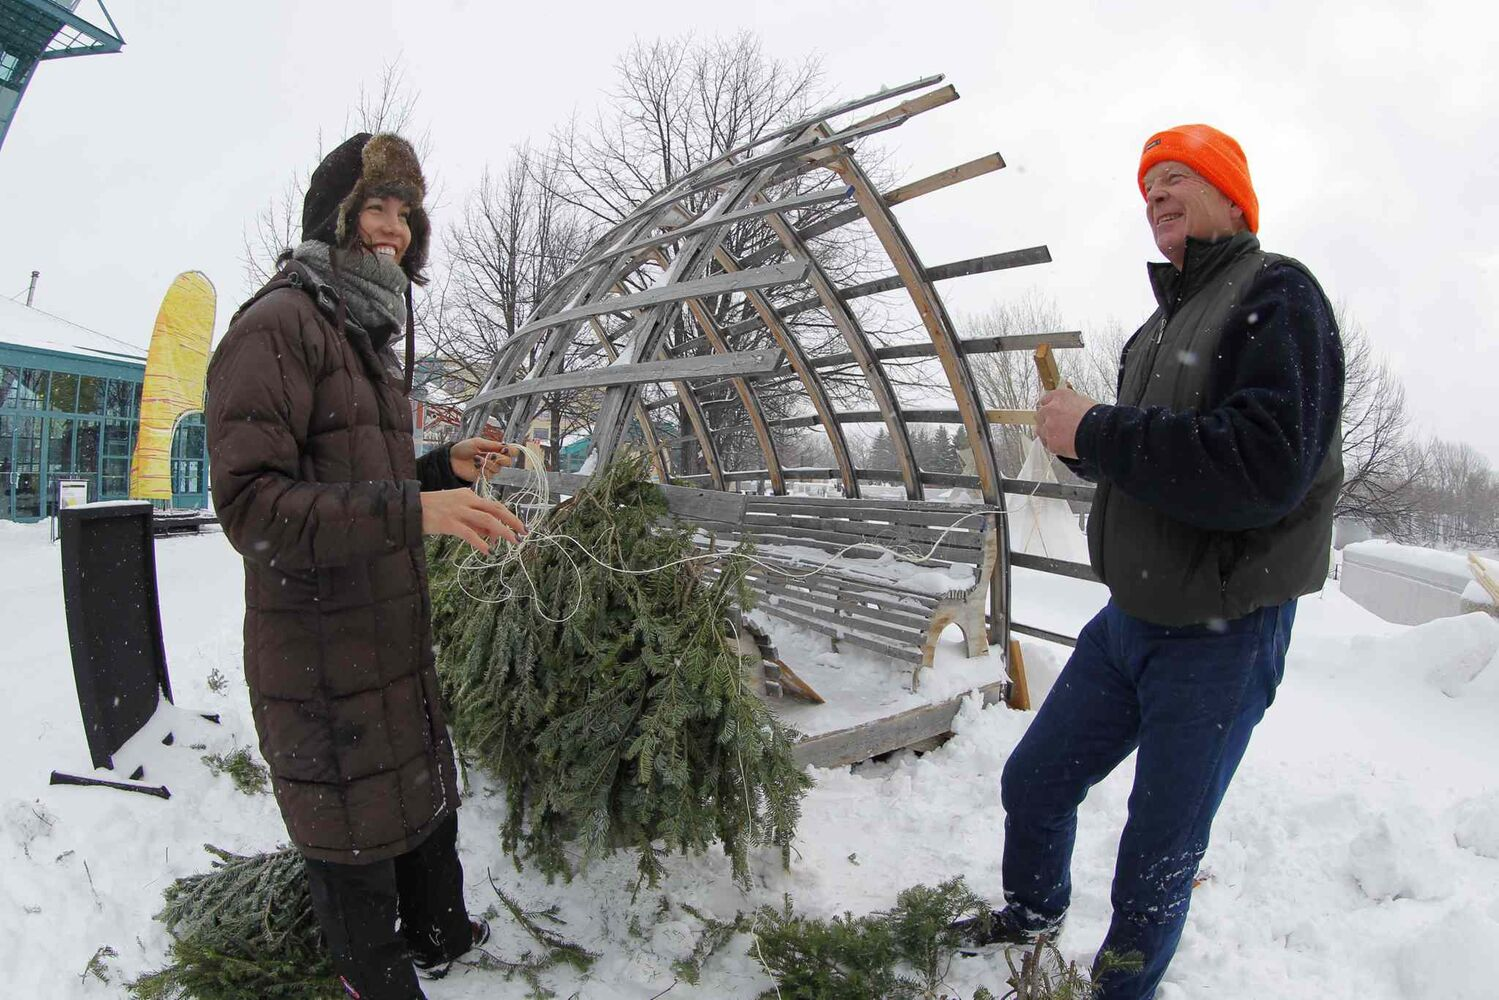 Hut designers Mamie Griffith and Richard Kroeker assemble Kroeker's 2010 winning hut design, Fir Hut, at the Forks on Friday.  (Boris Minkevich / Winnipeg Free Press)